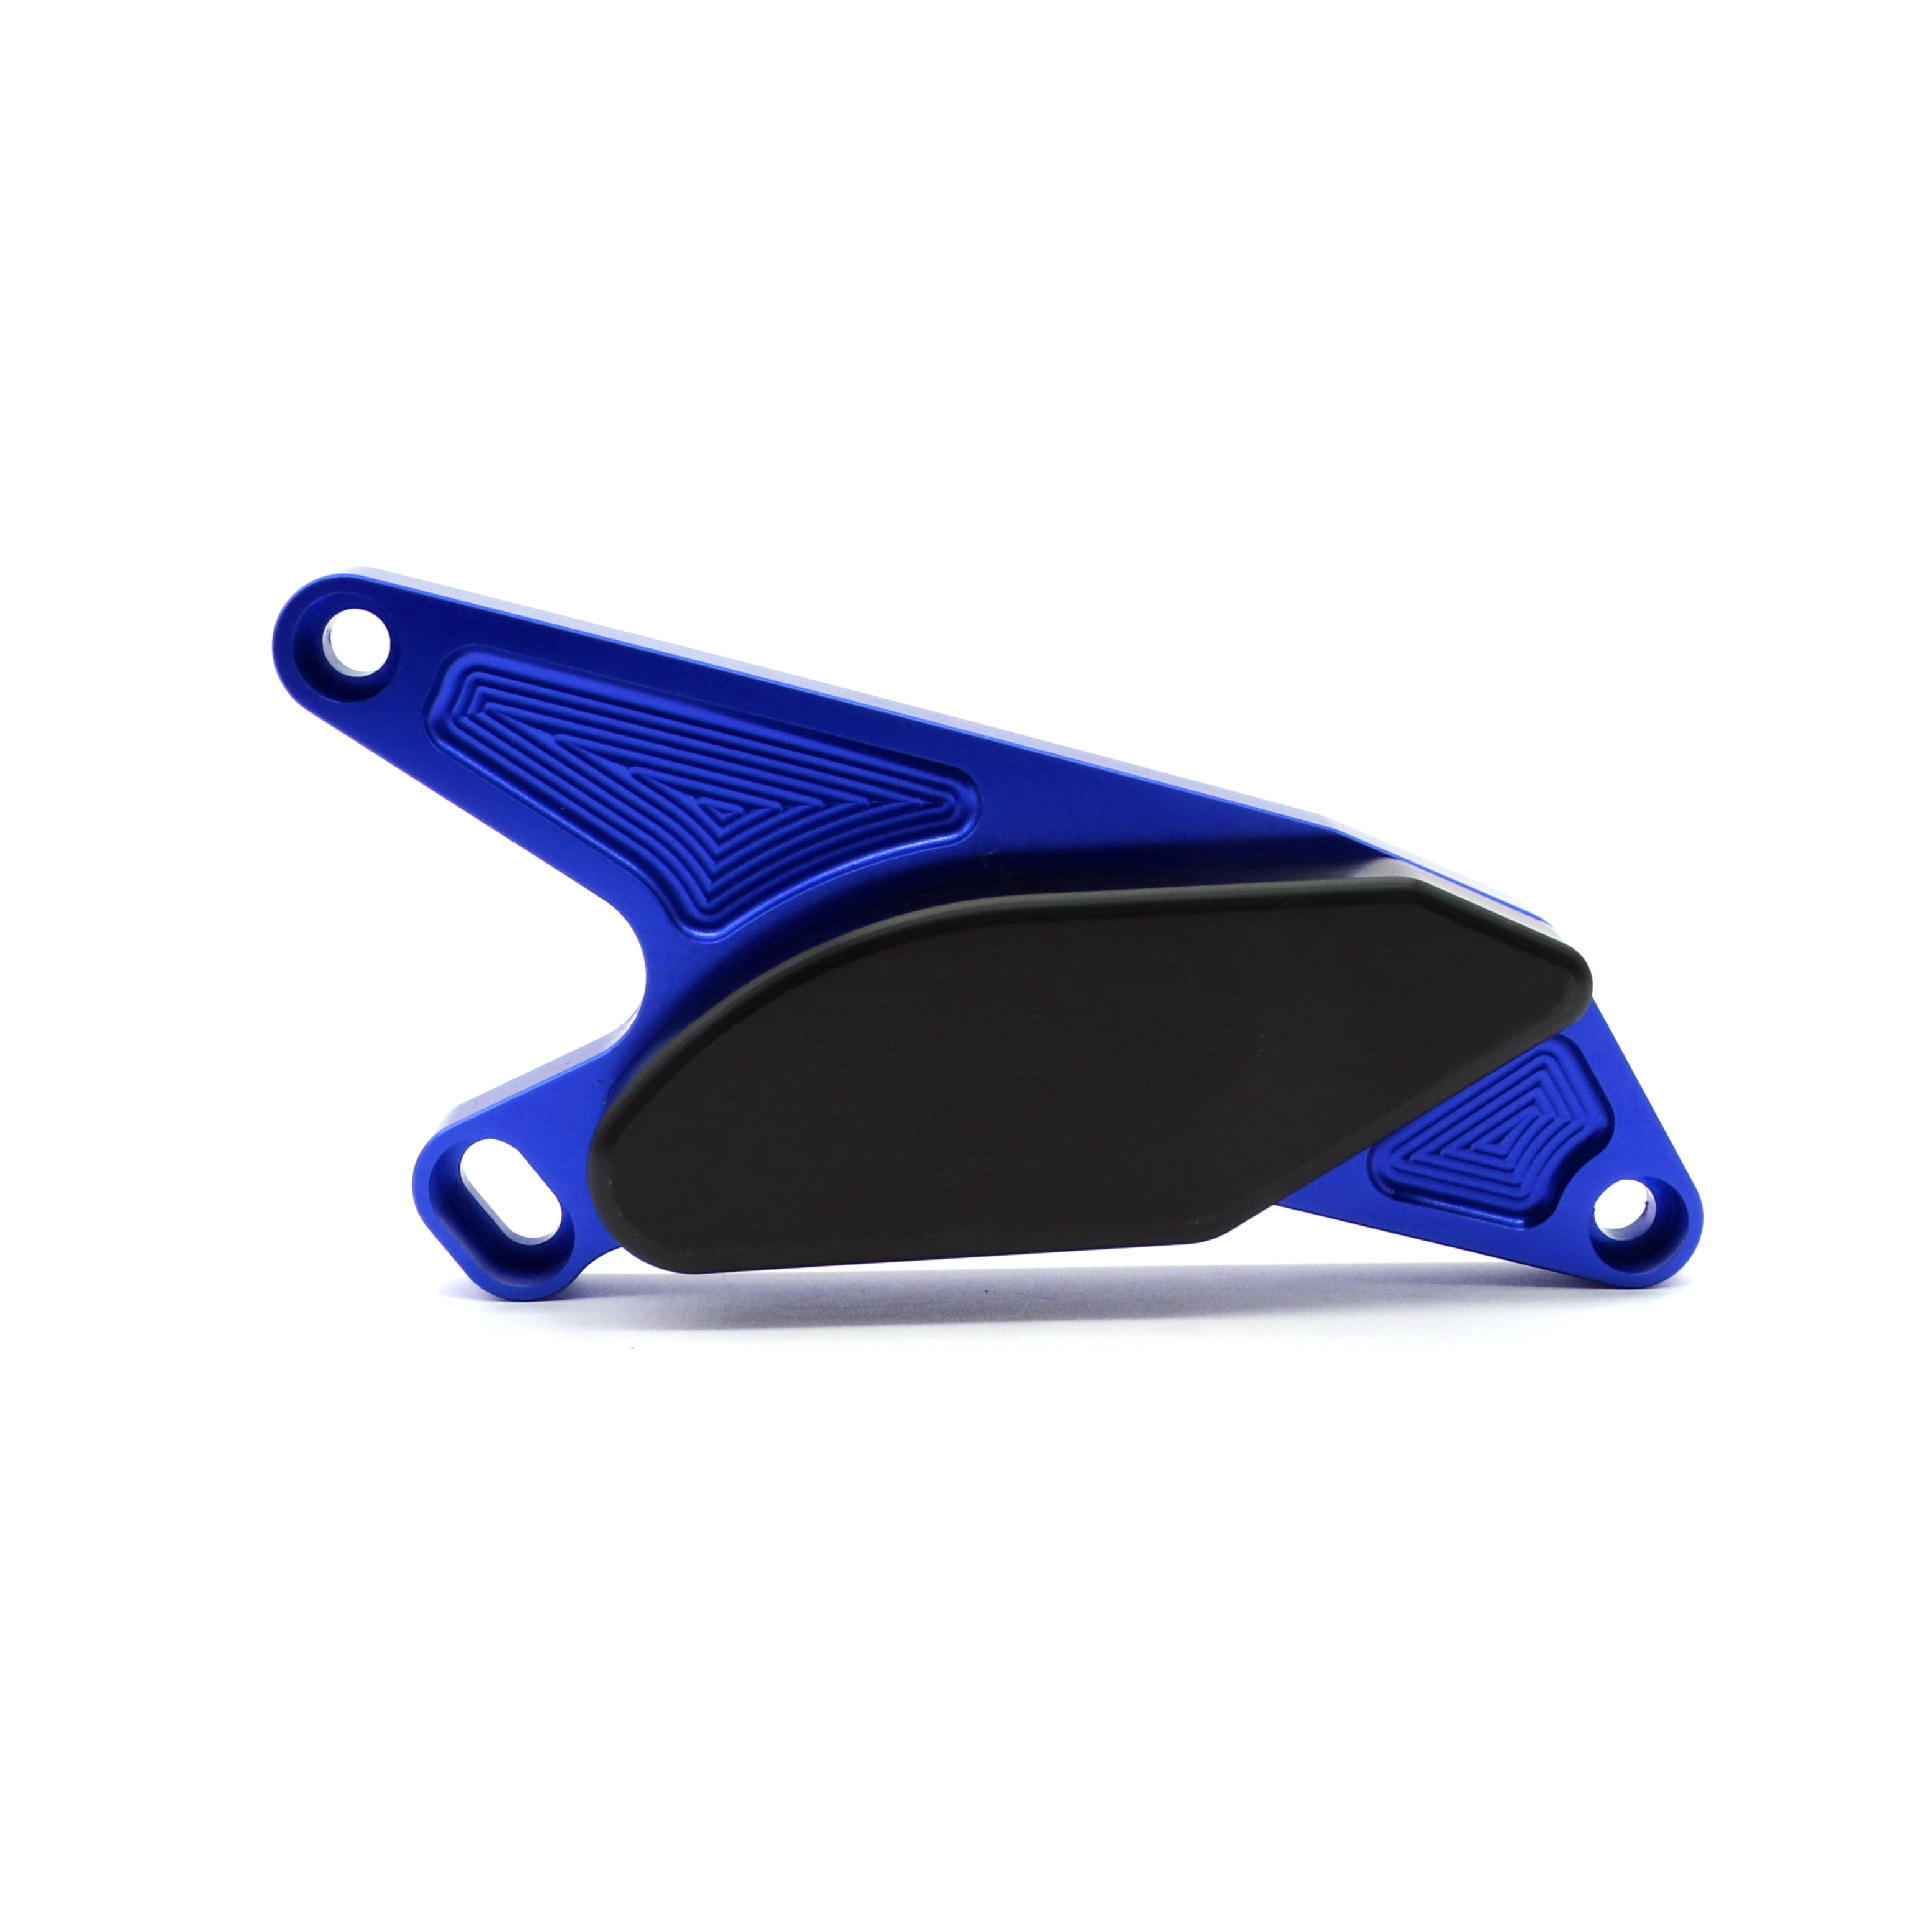 Motorcycle Engine Stator Case Guard Cover for SUZUKI GSXR1300 Hayabusa 99-16 blue